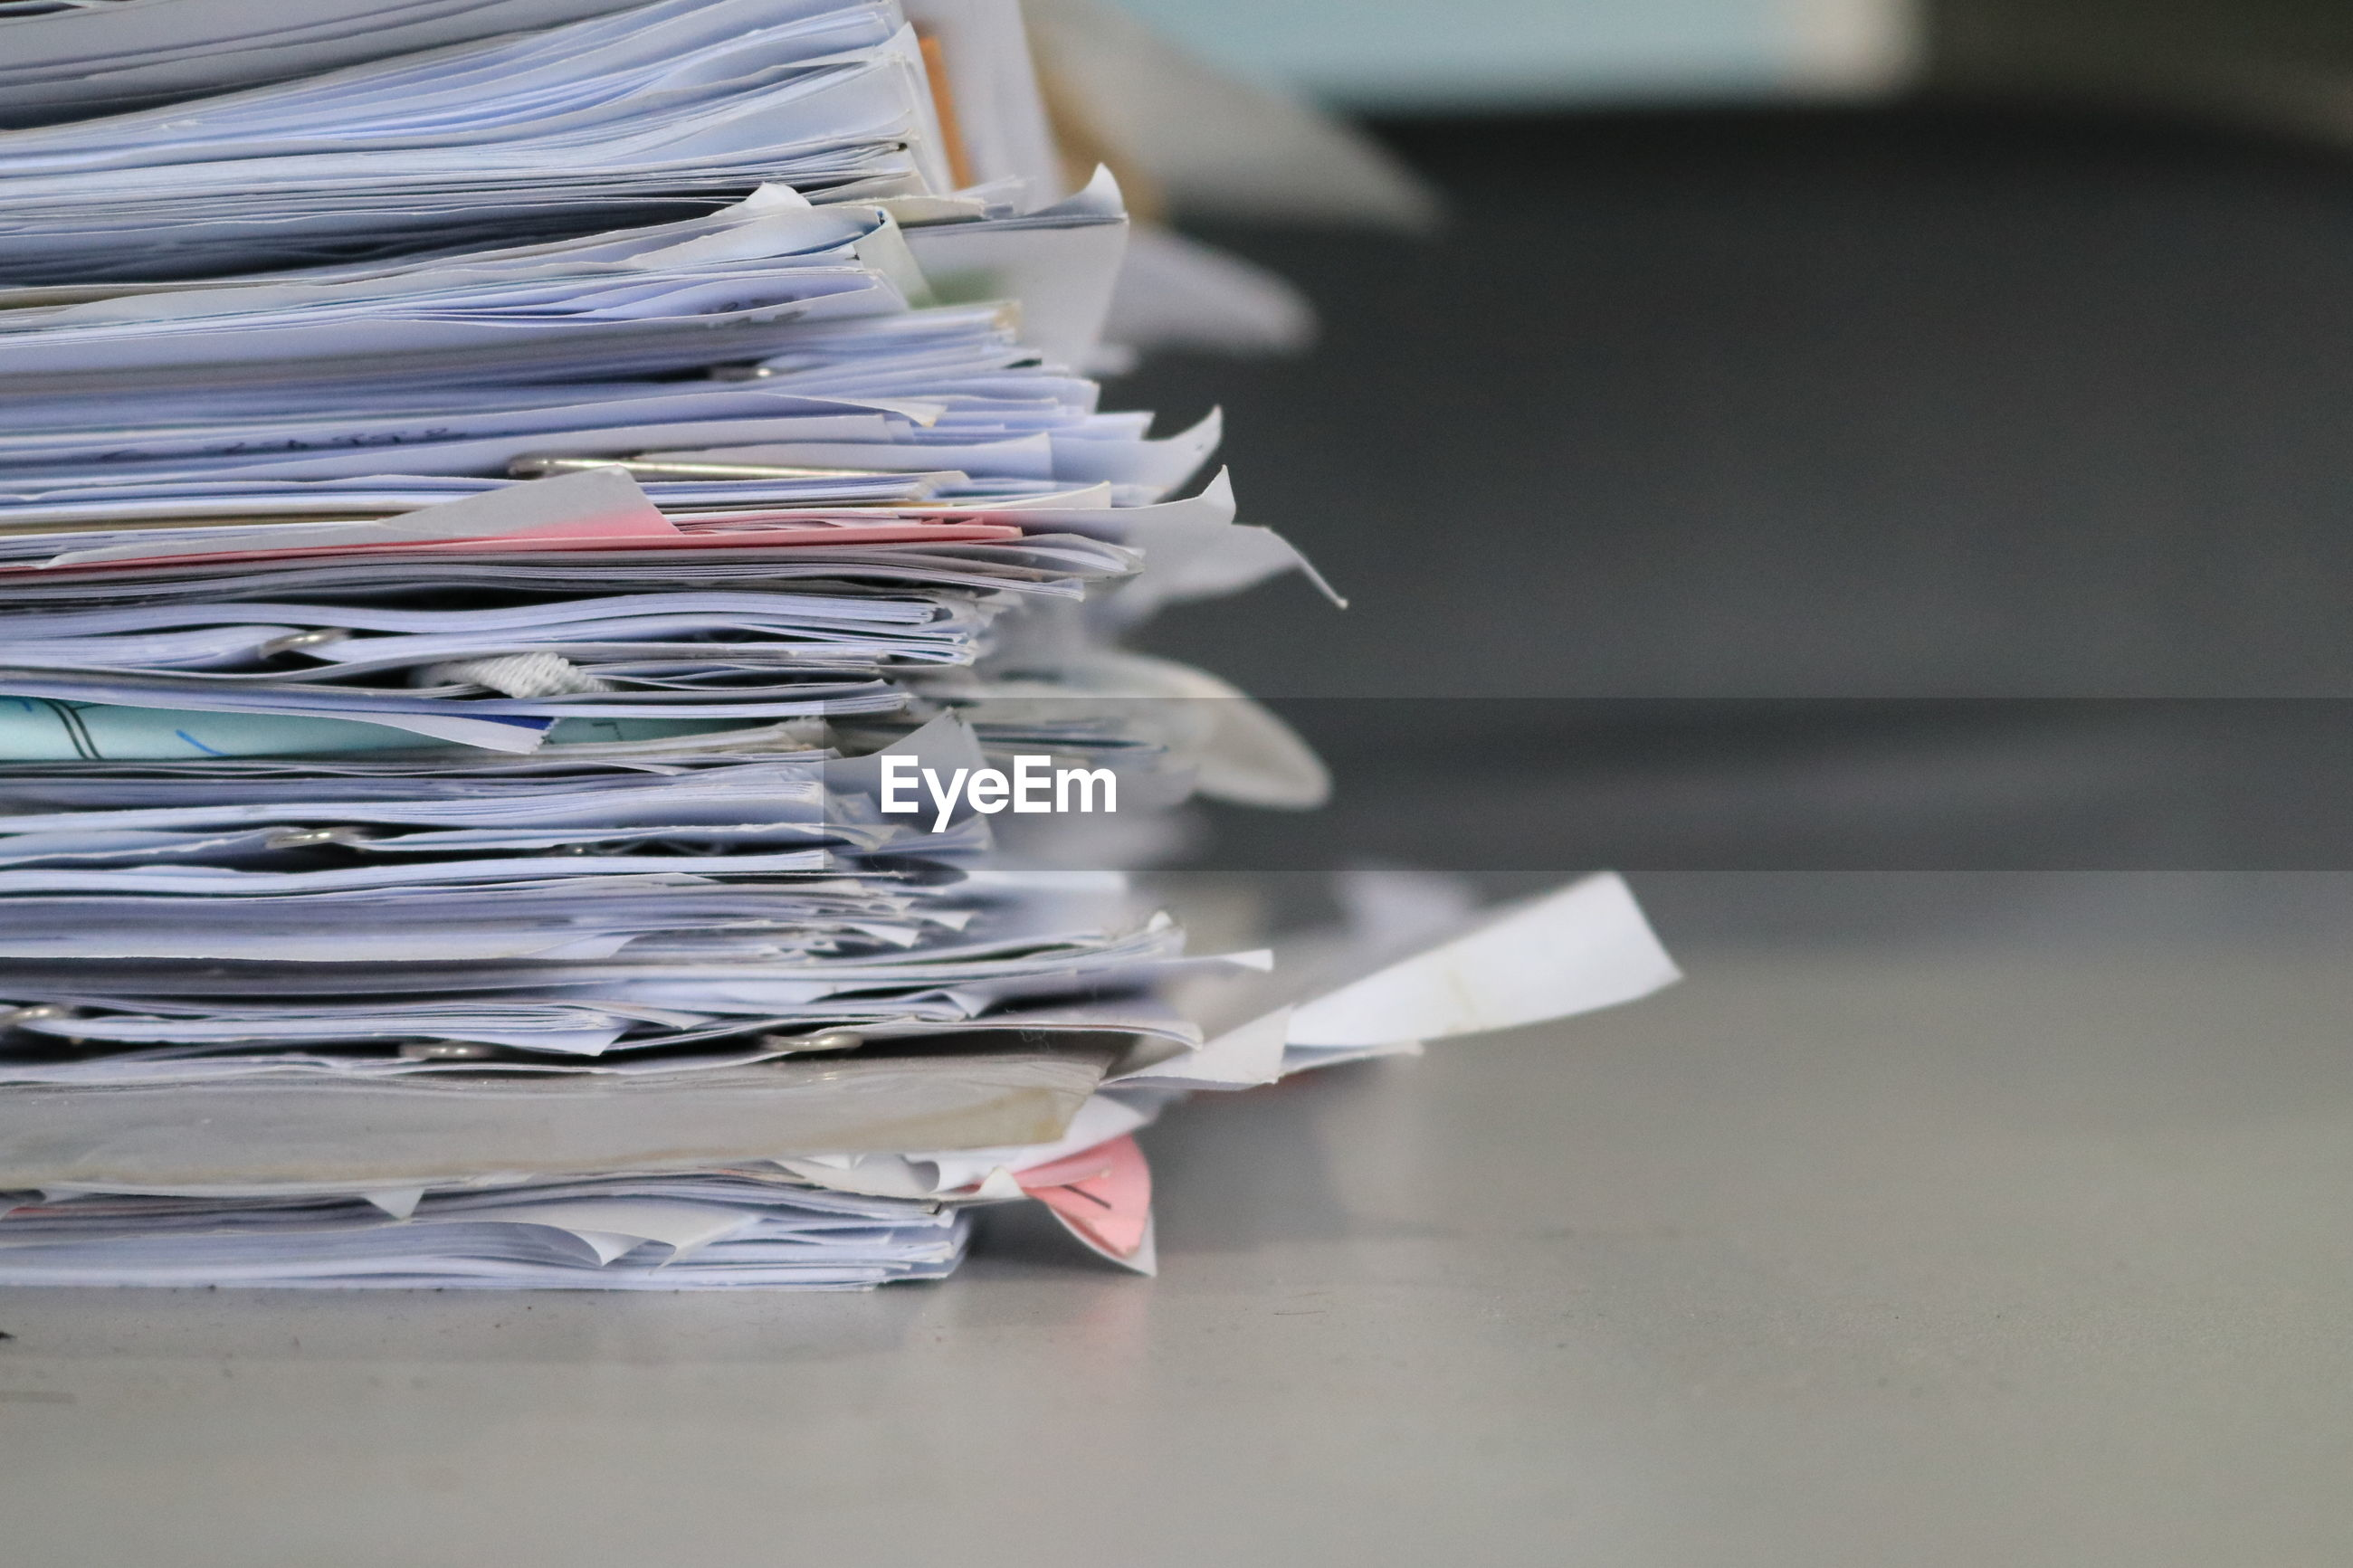 Close-up of stacked papers on table